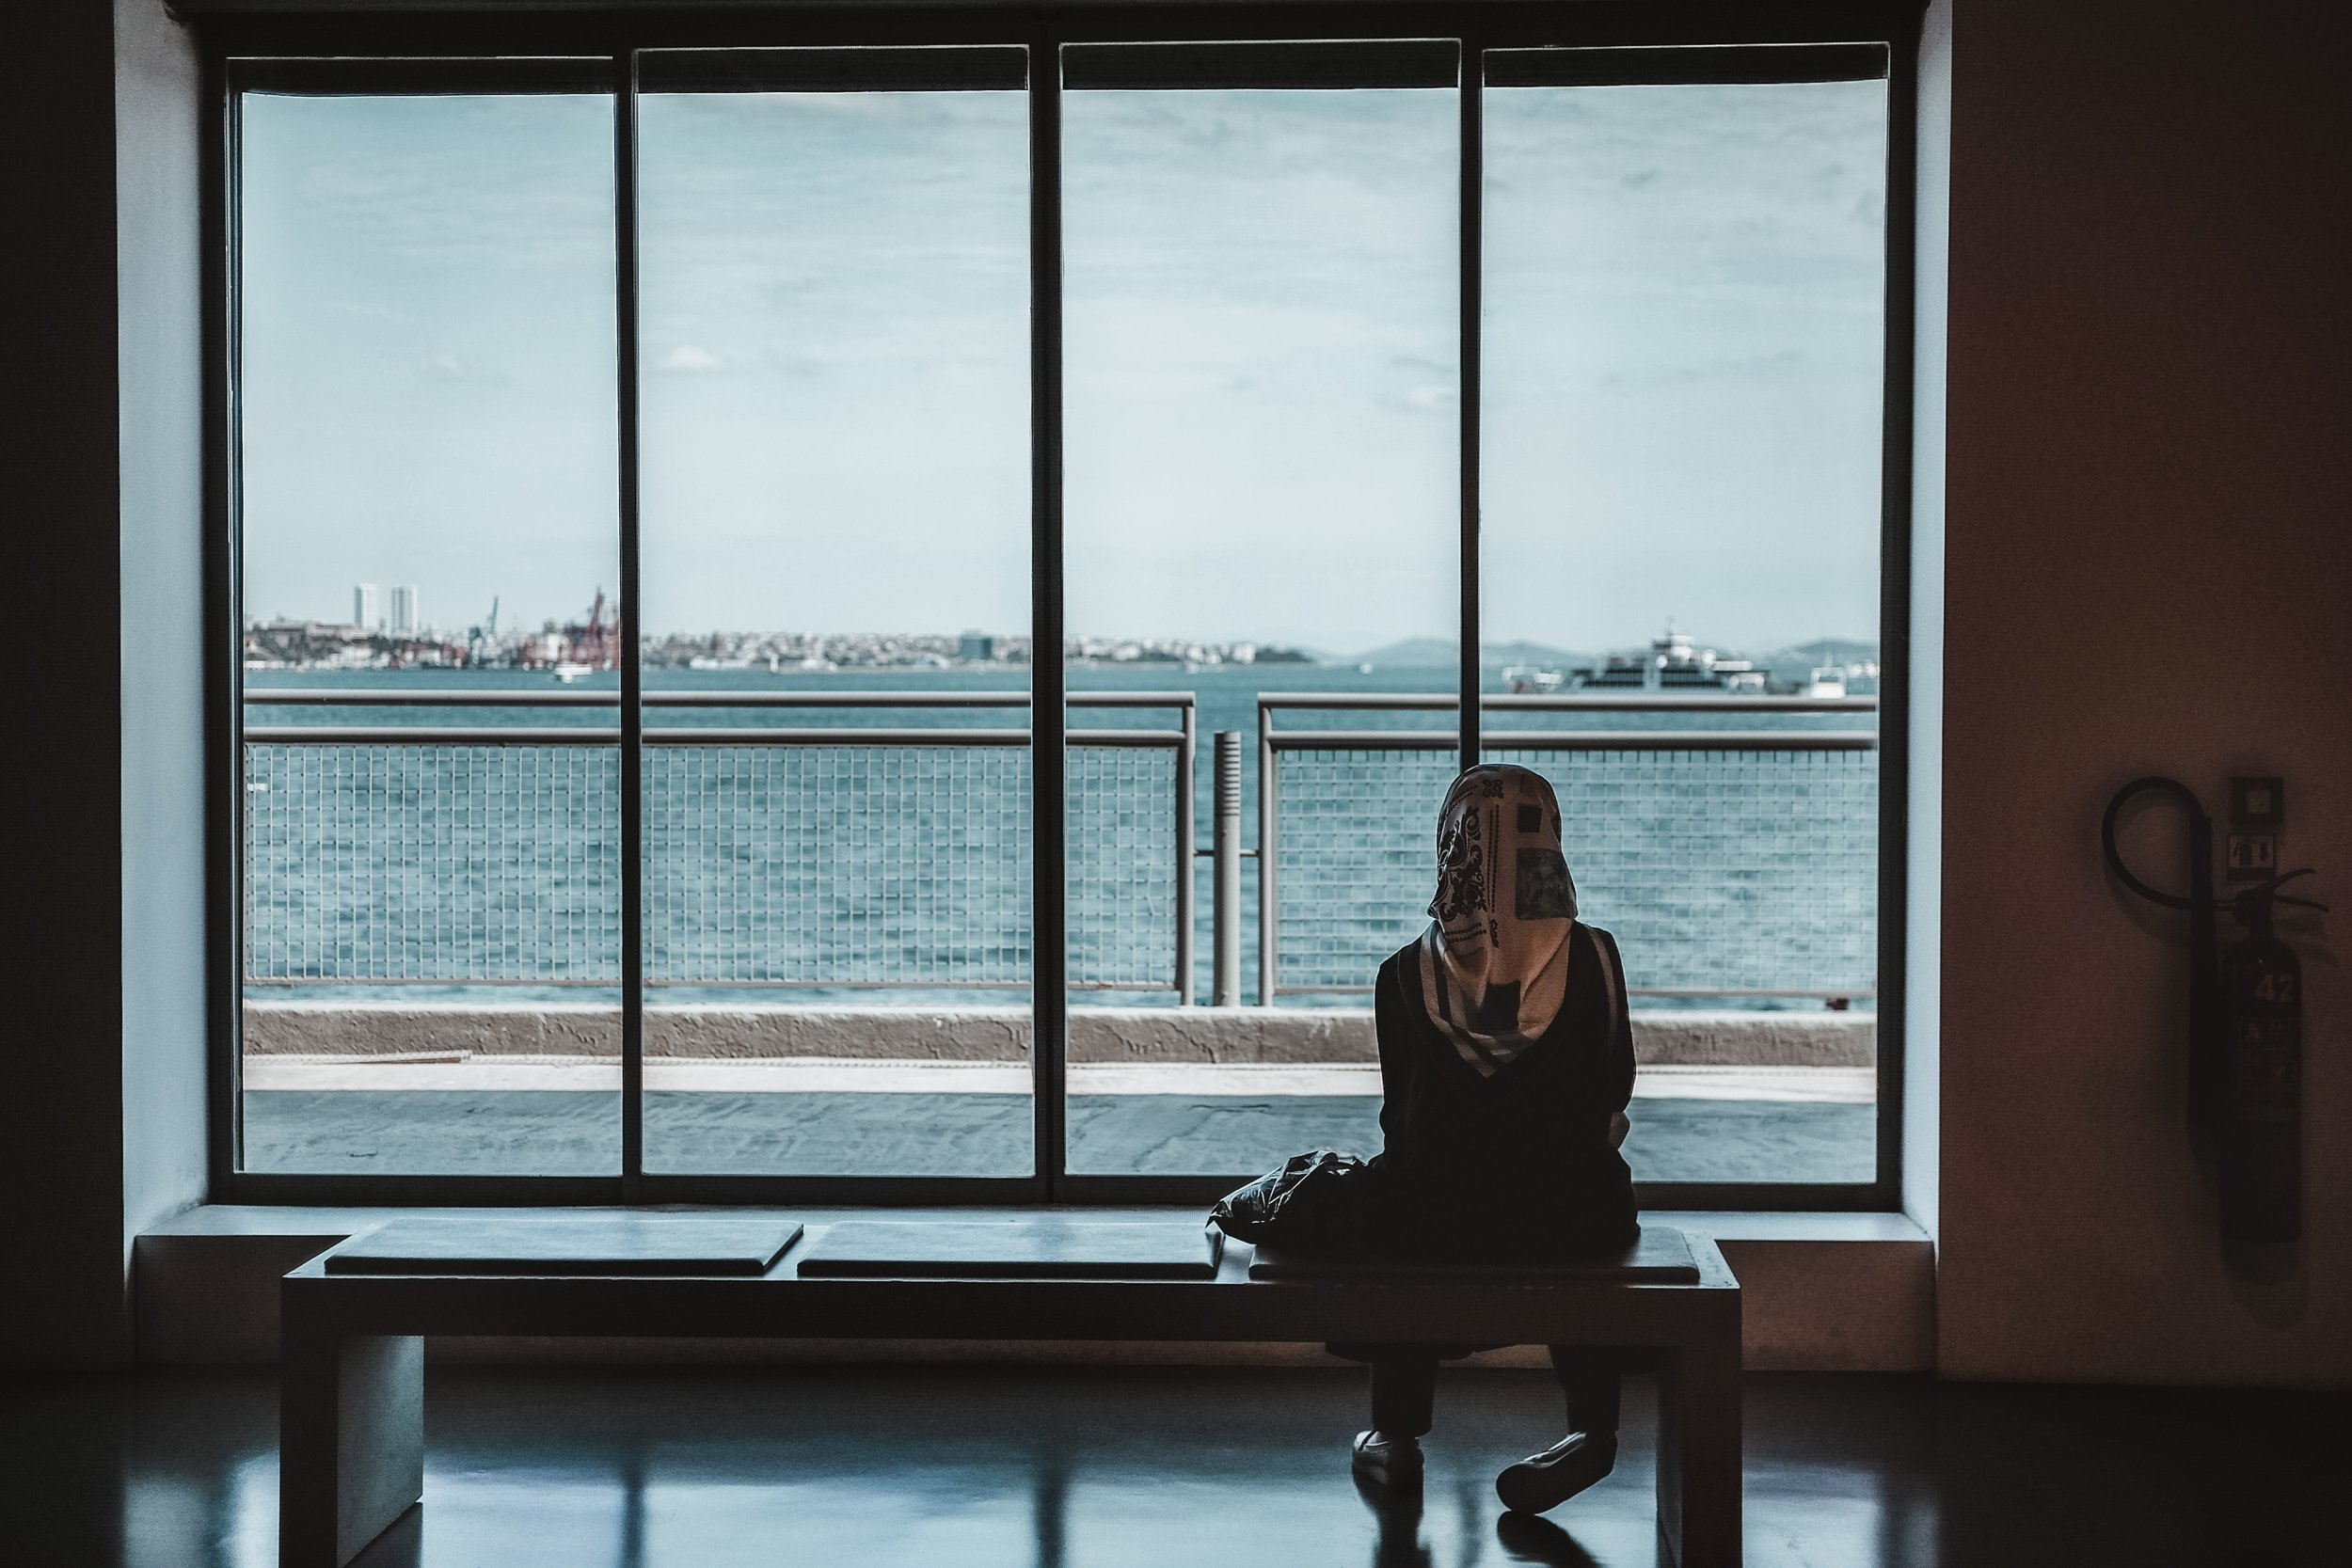 woman sitting at airport looking out the window